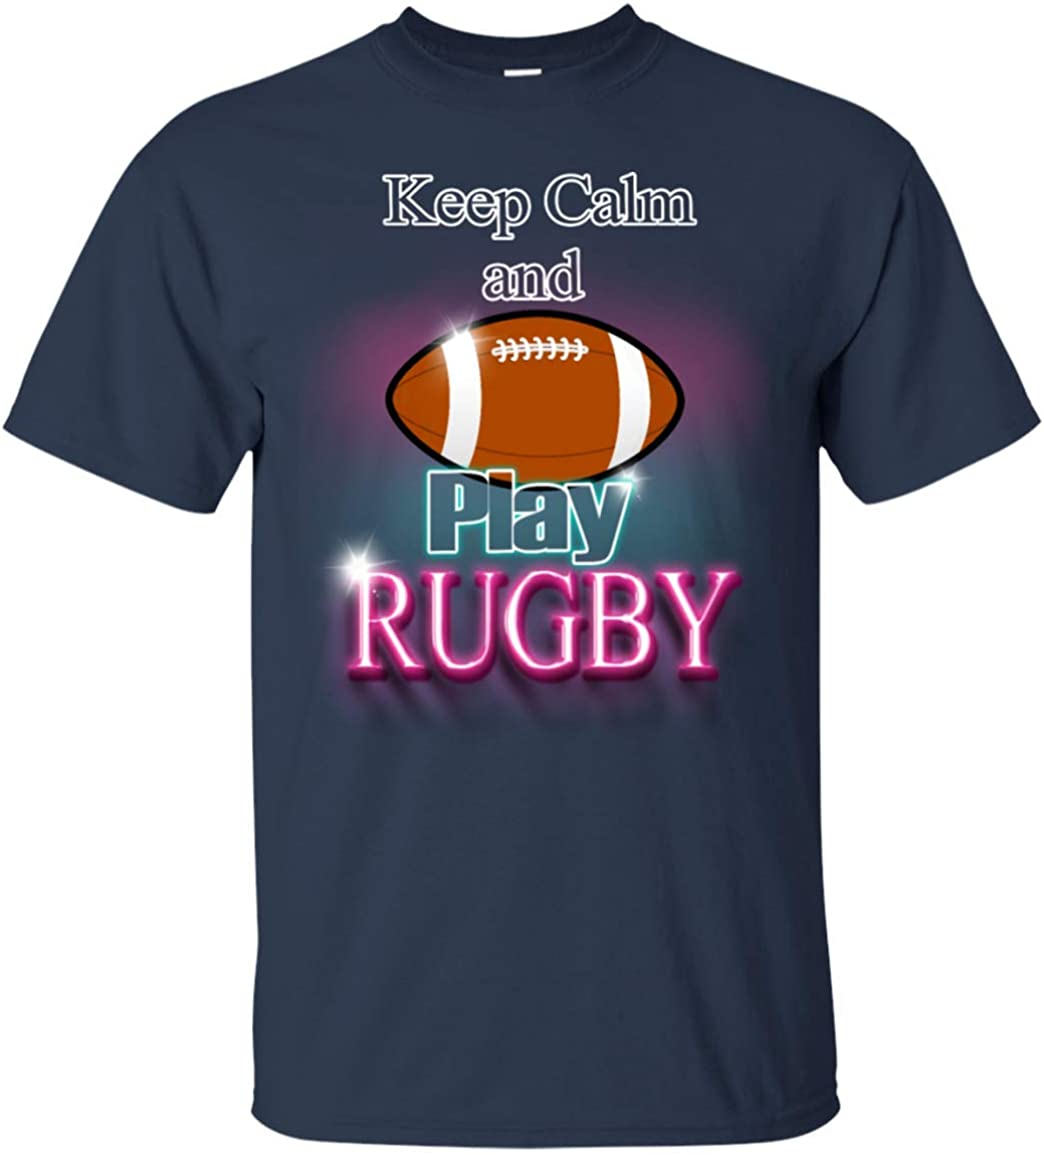 Relationship Status Badass Rugby P Rugby T-Shirt Funny Novelty Mens tee TShirt